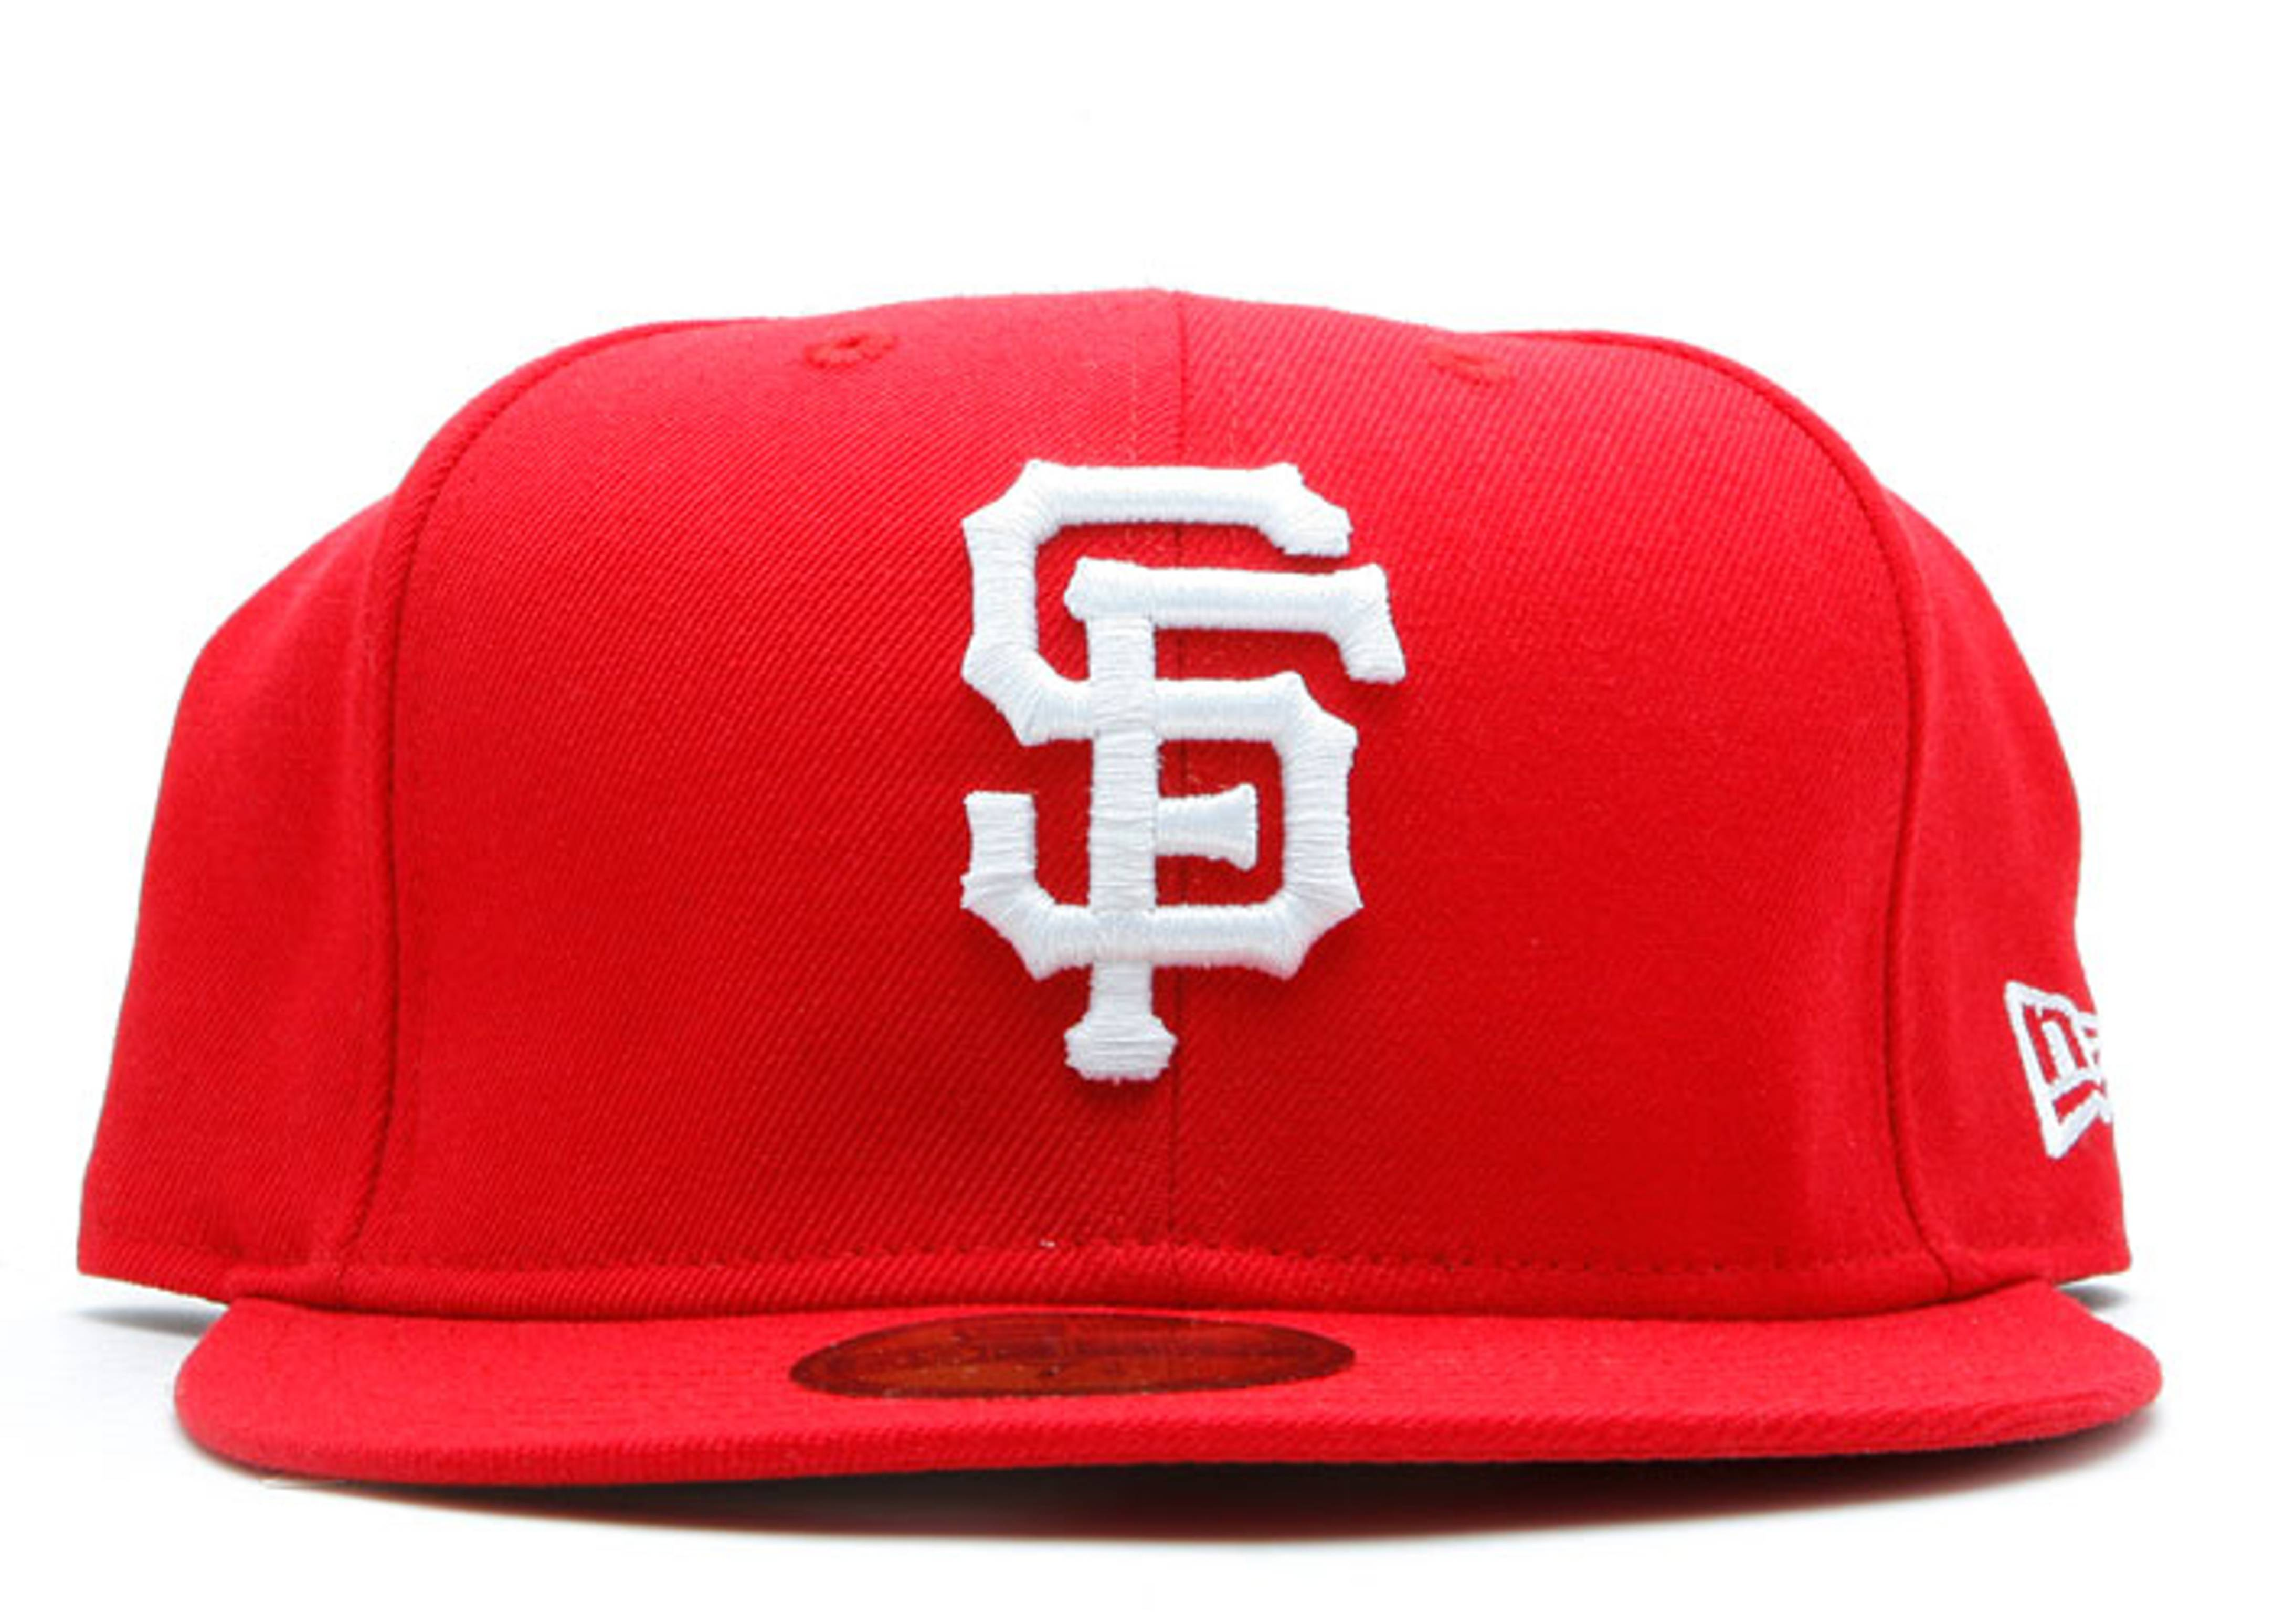 san francisco giants fitted